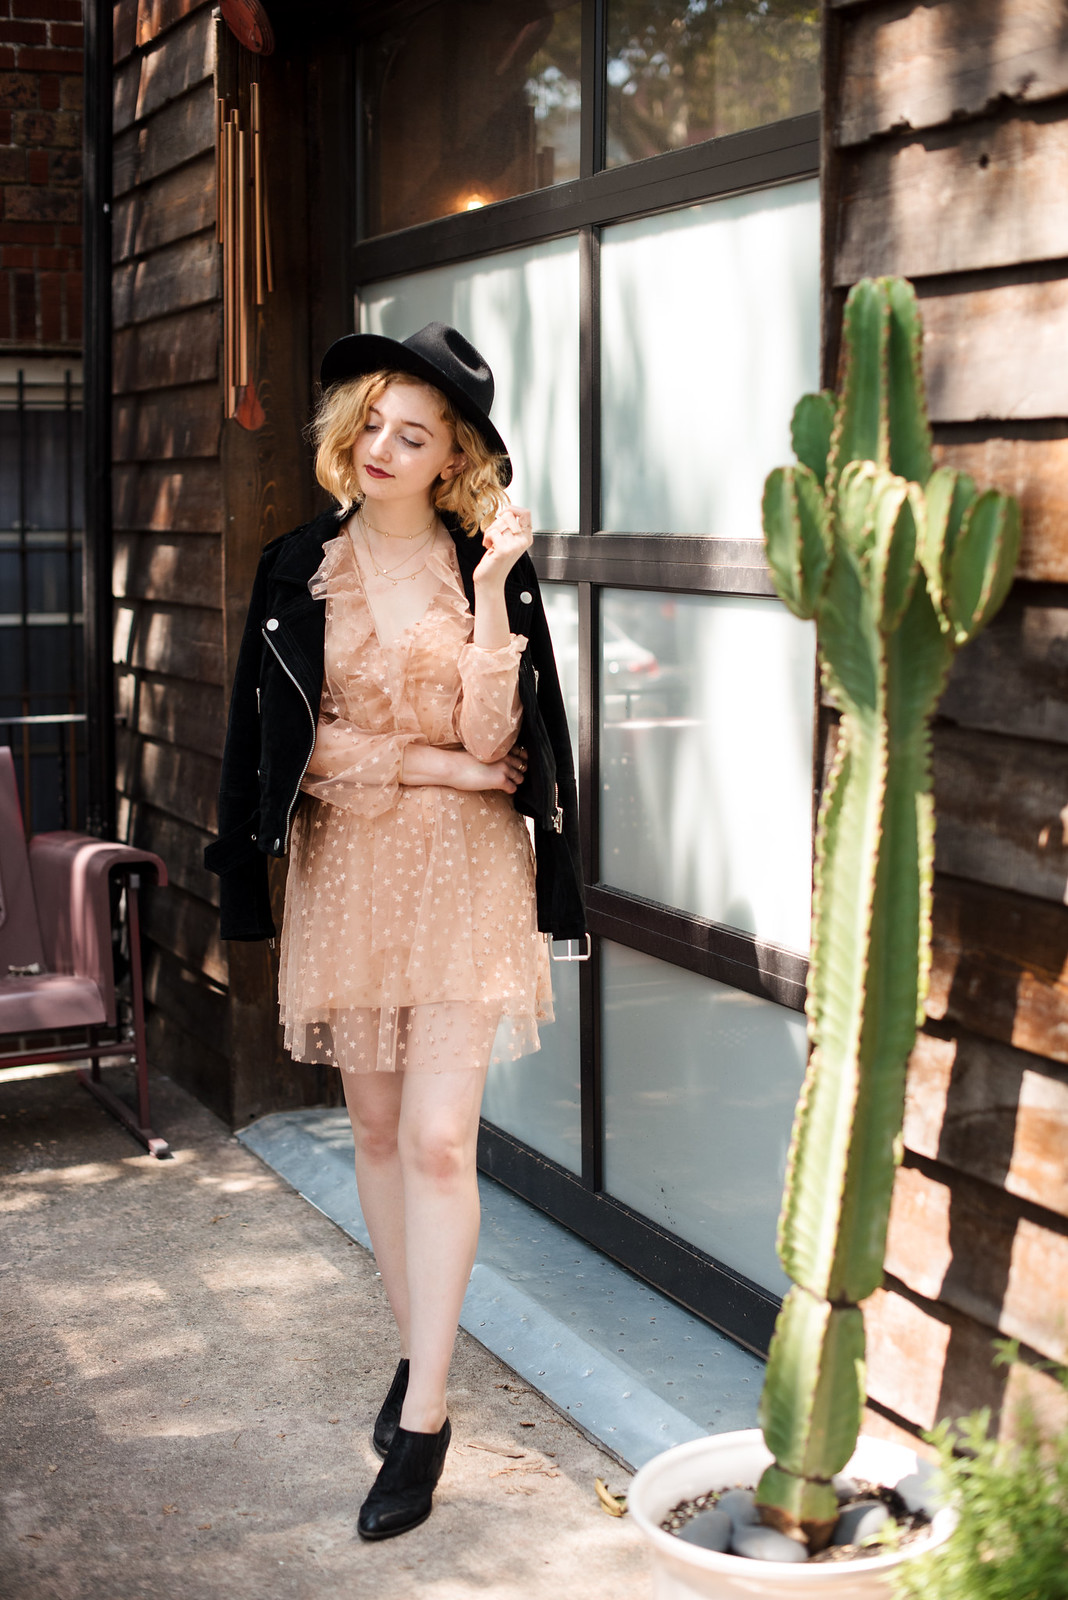 For Love and Lemons Dress Blank NYC jacket at Urban Cowboy on juliettelaura.blogspot.com